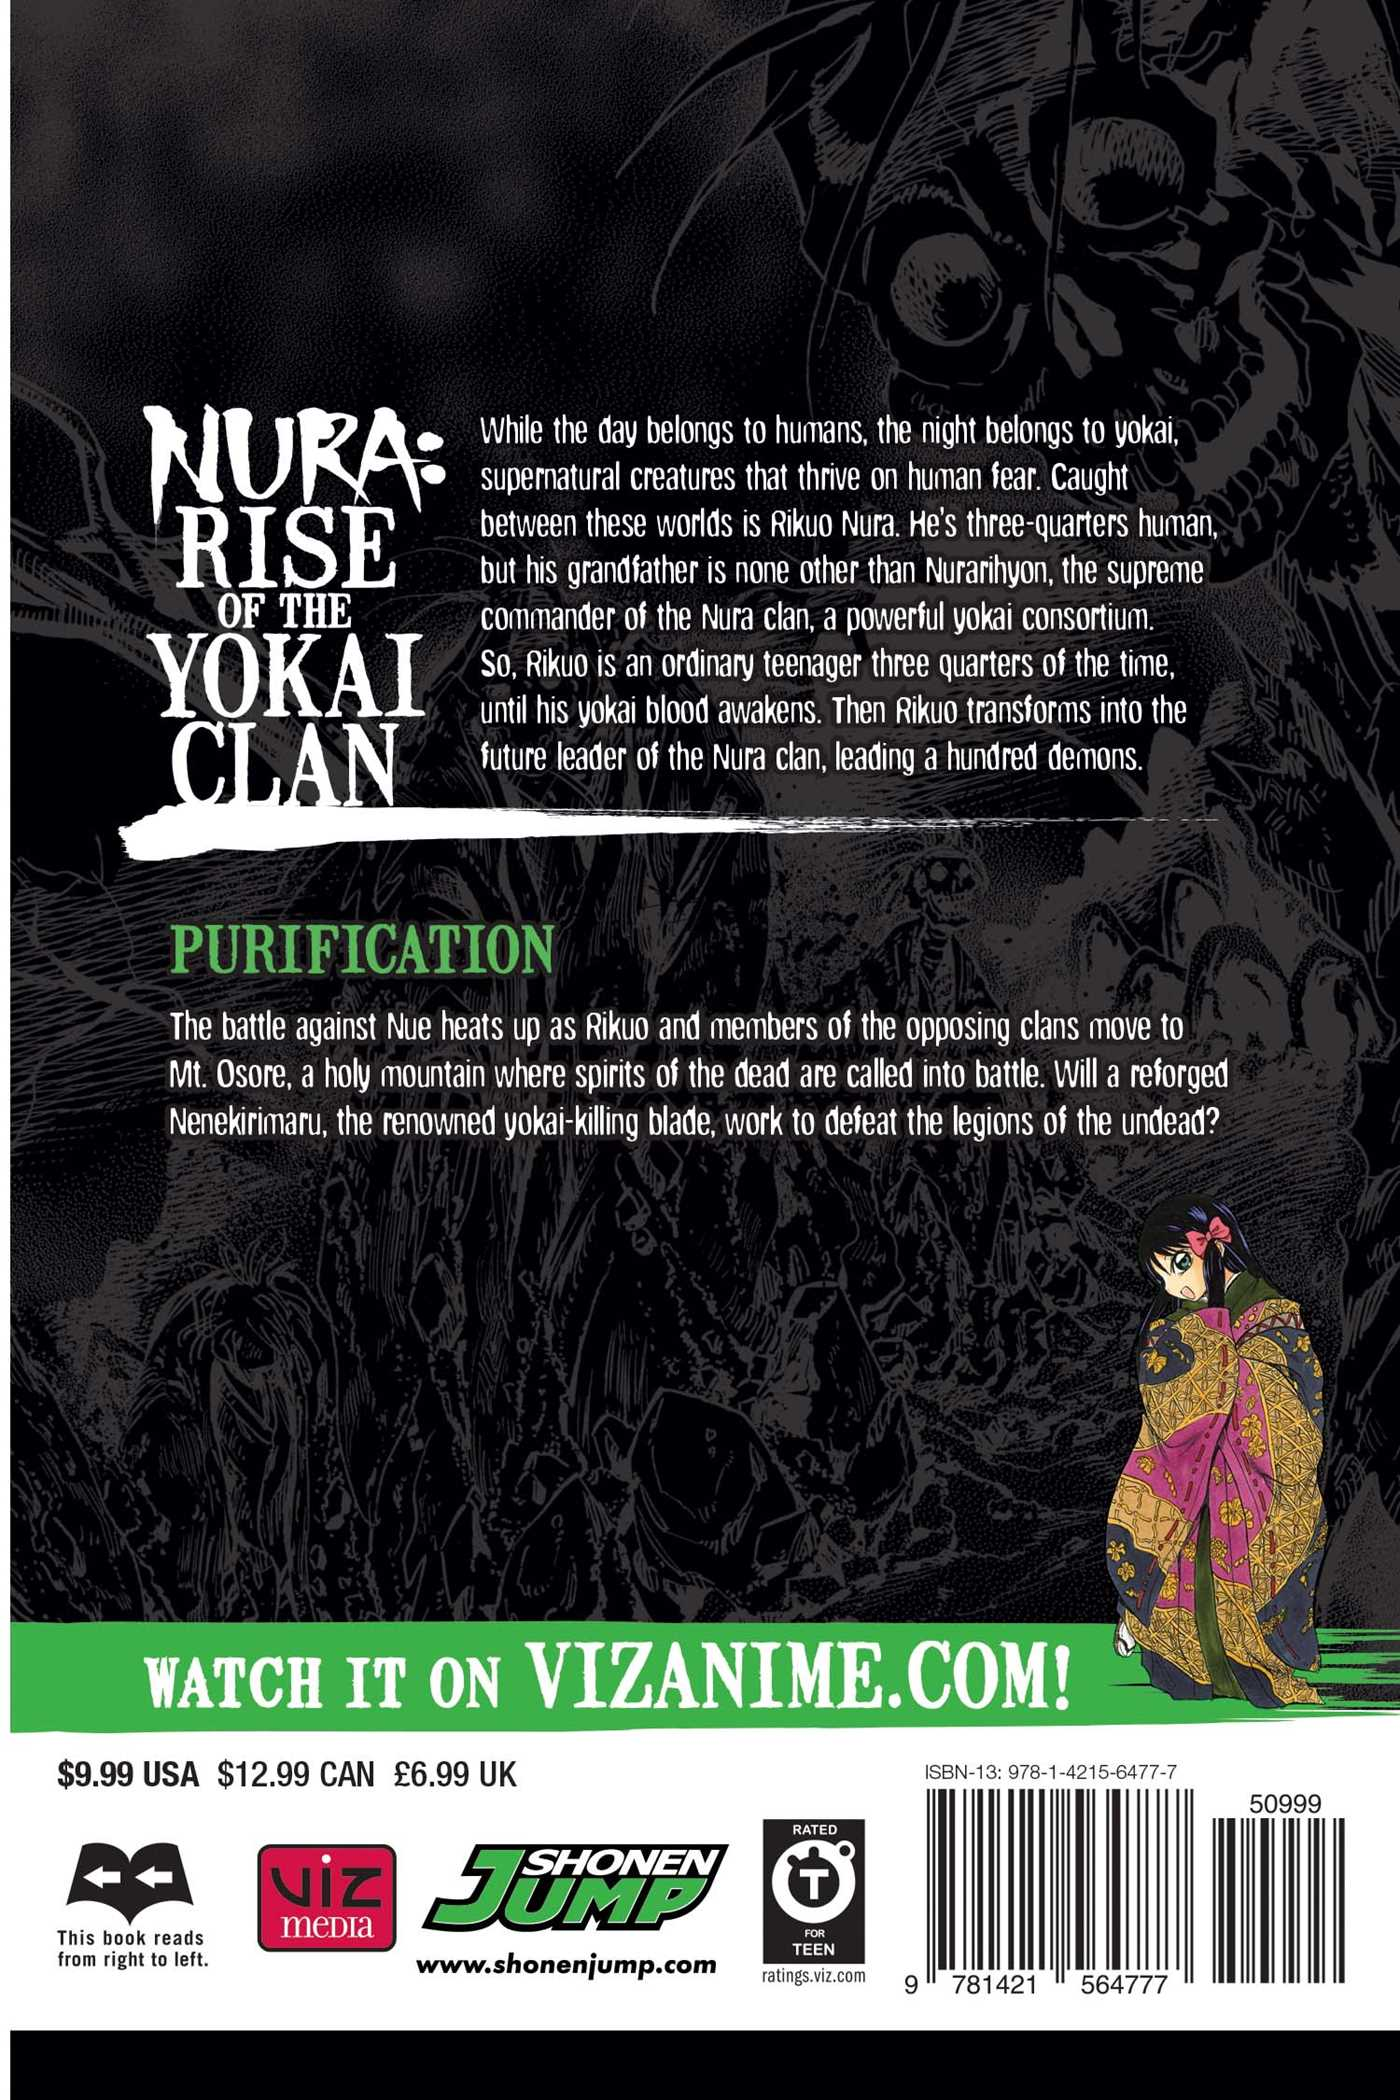 Nura-rise-of-the-yokai-clan-vol-22-9781421564777_hr-back